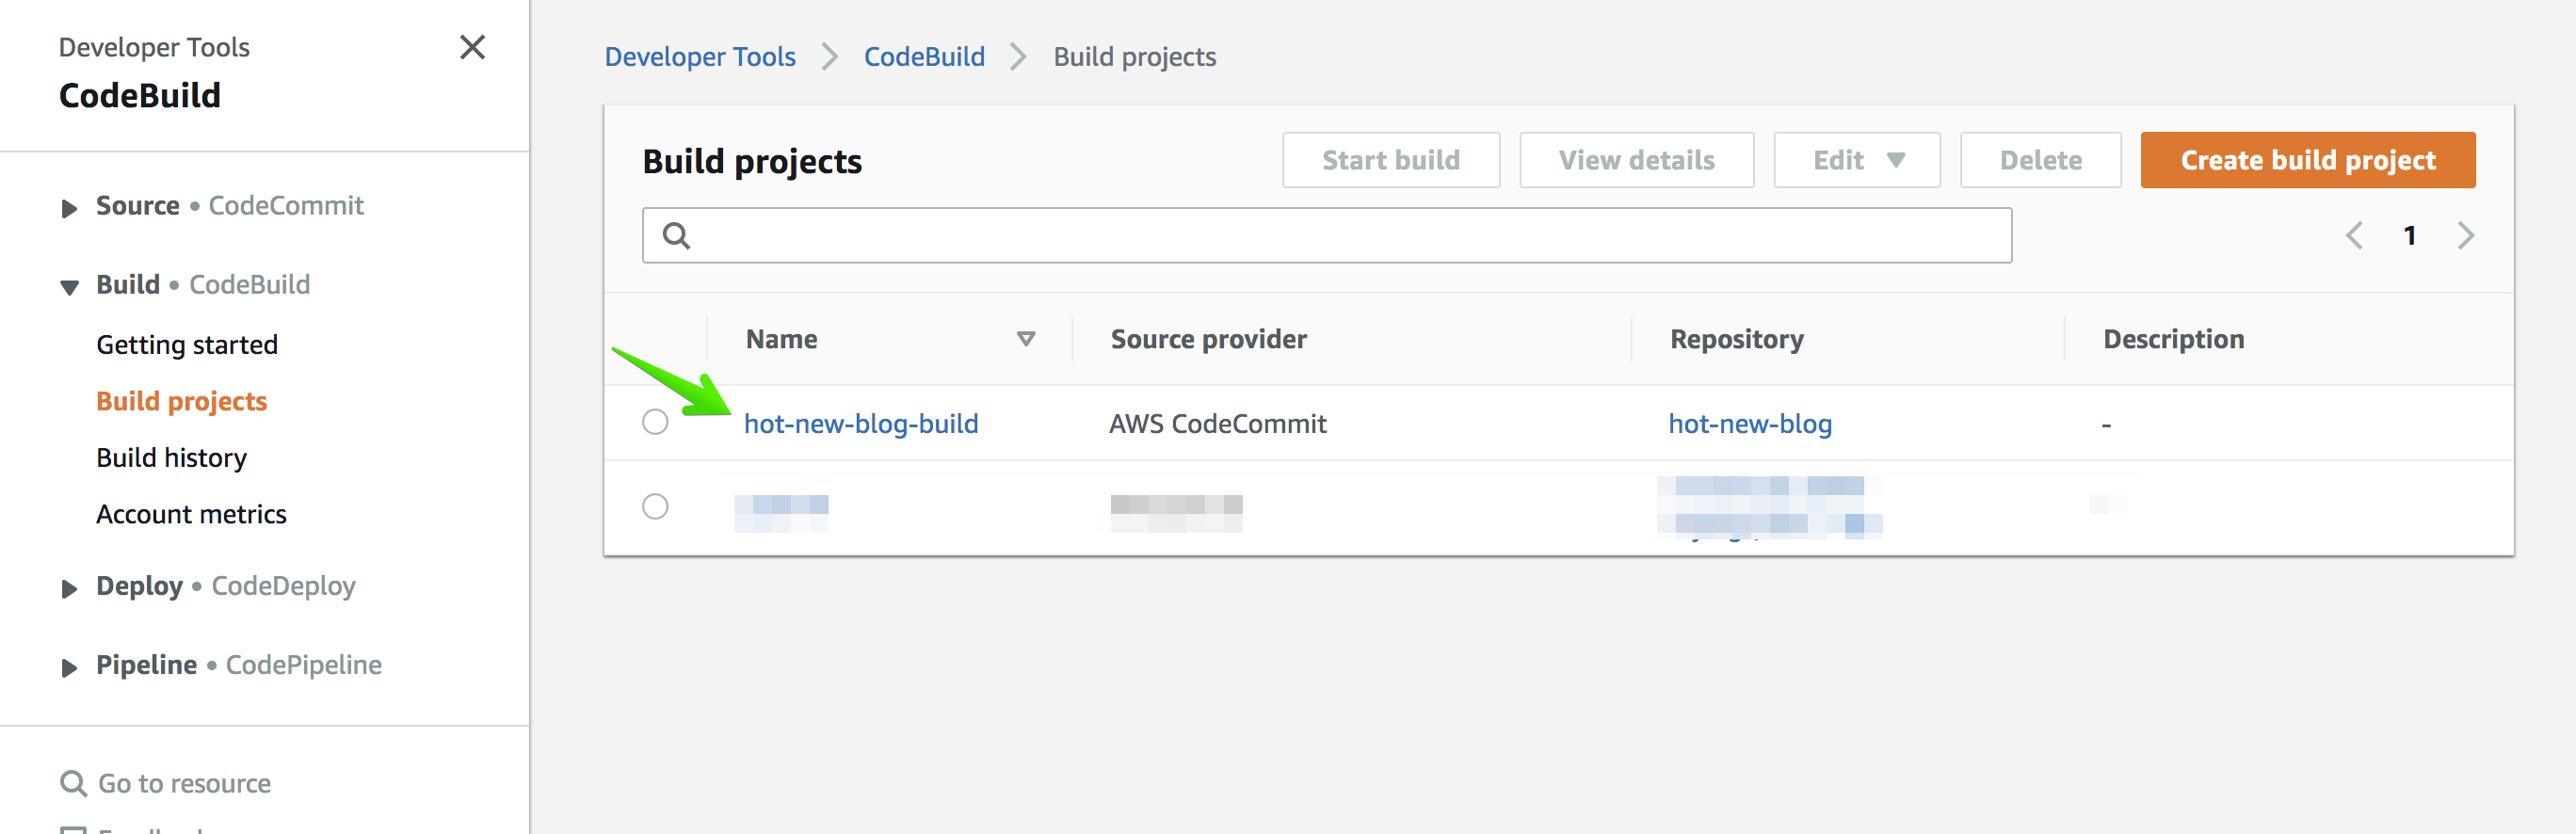 CodeBuild - AWS Developer Tools 2019-08-29 16-17-09